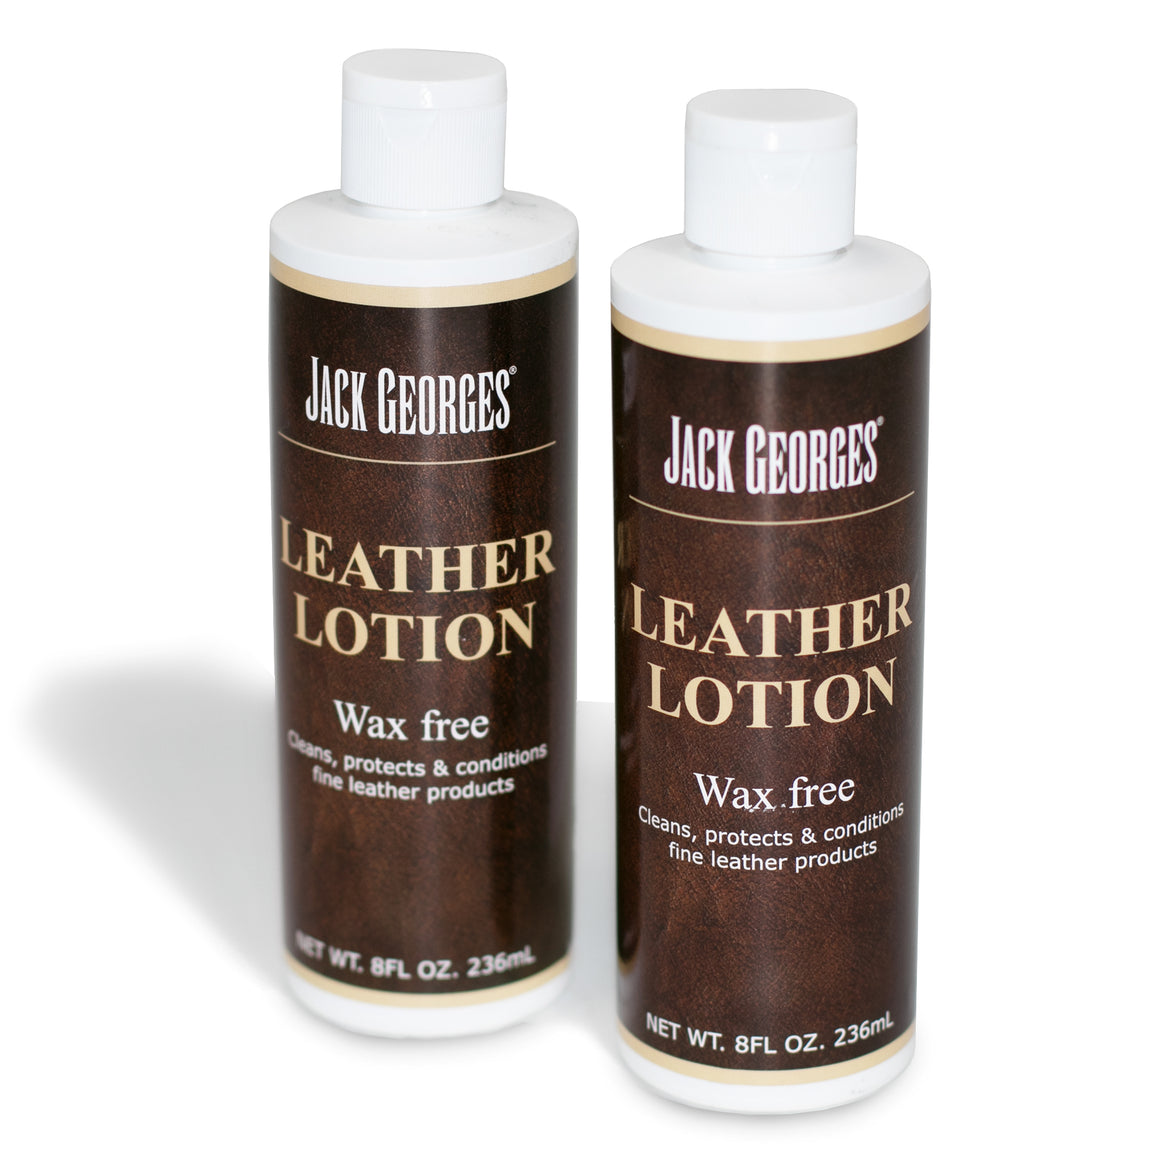 Jack Georges Leather Lotion (2 bottles)